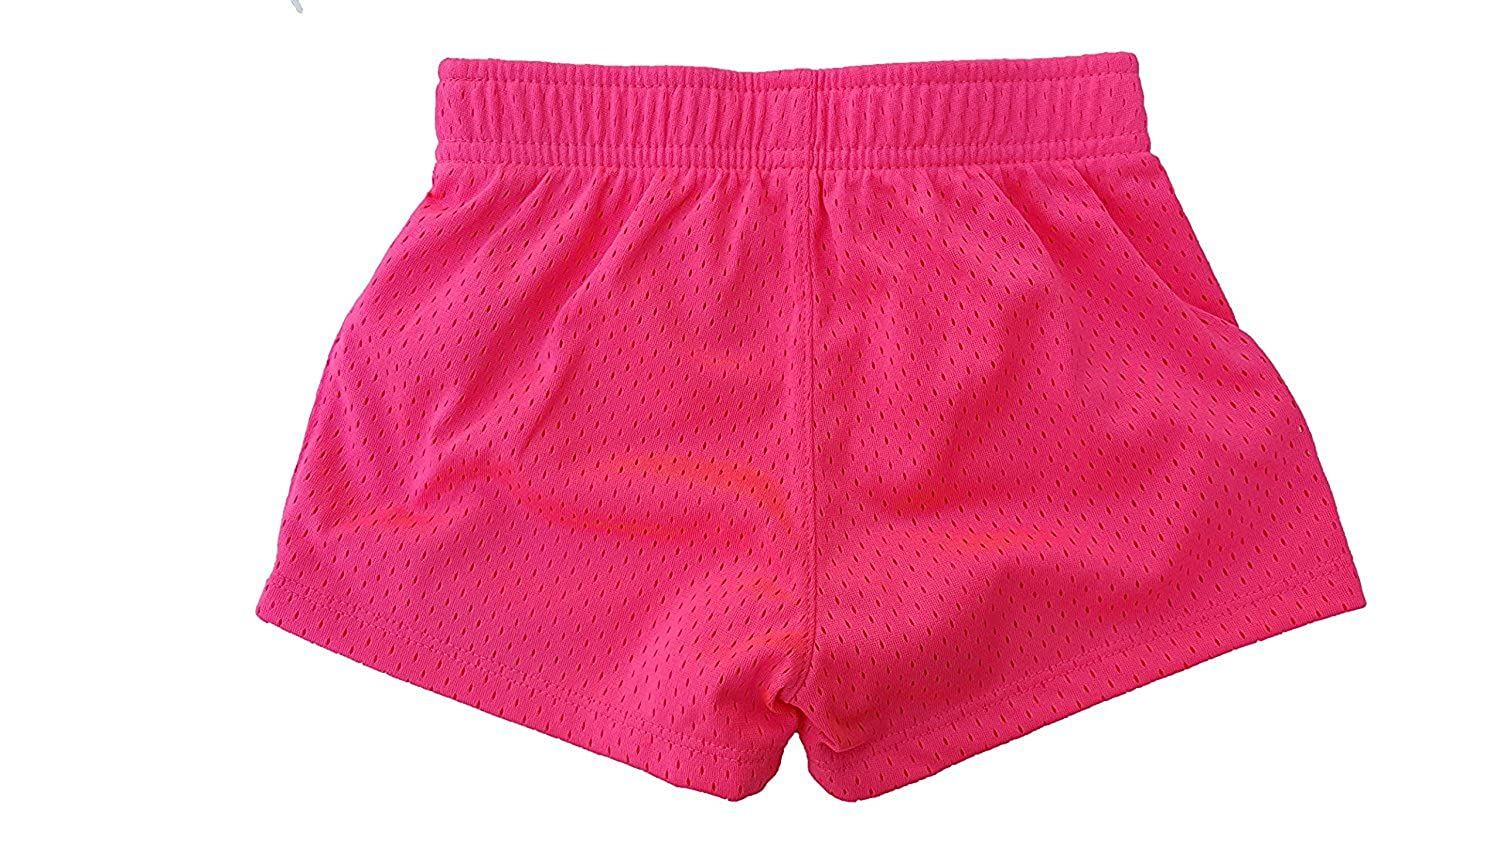 Little Kids Nike Kids Classic Mesh Shorts